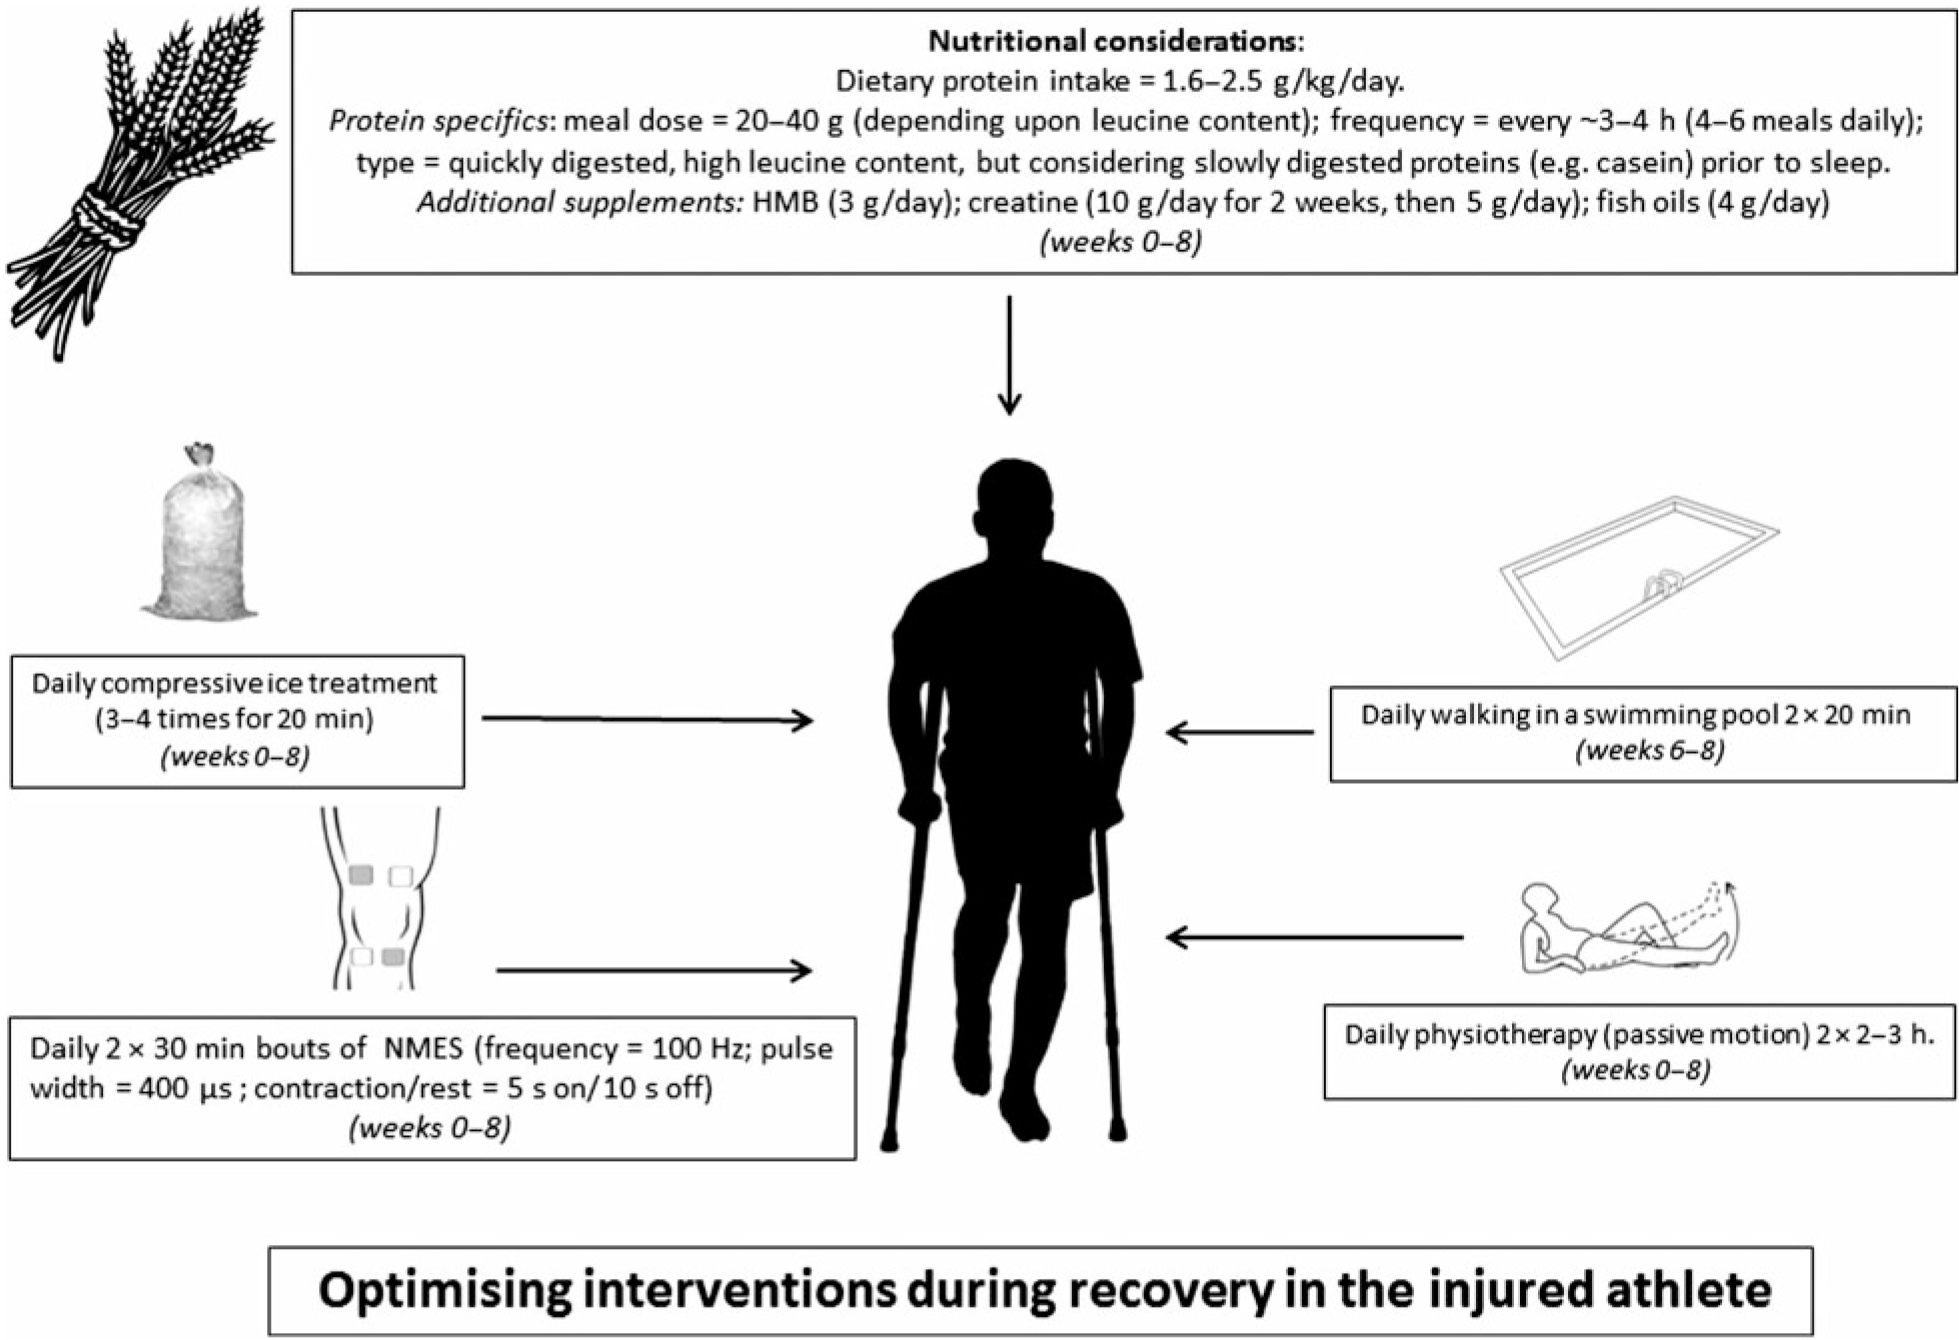 Optimising interventions during recovery in the injured athlete